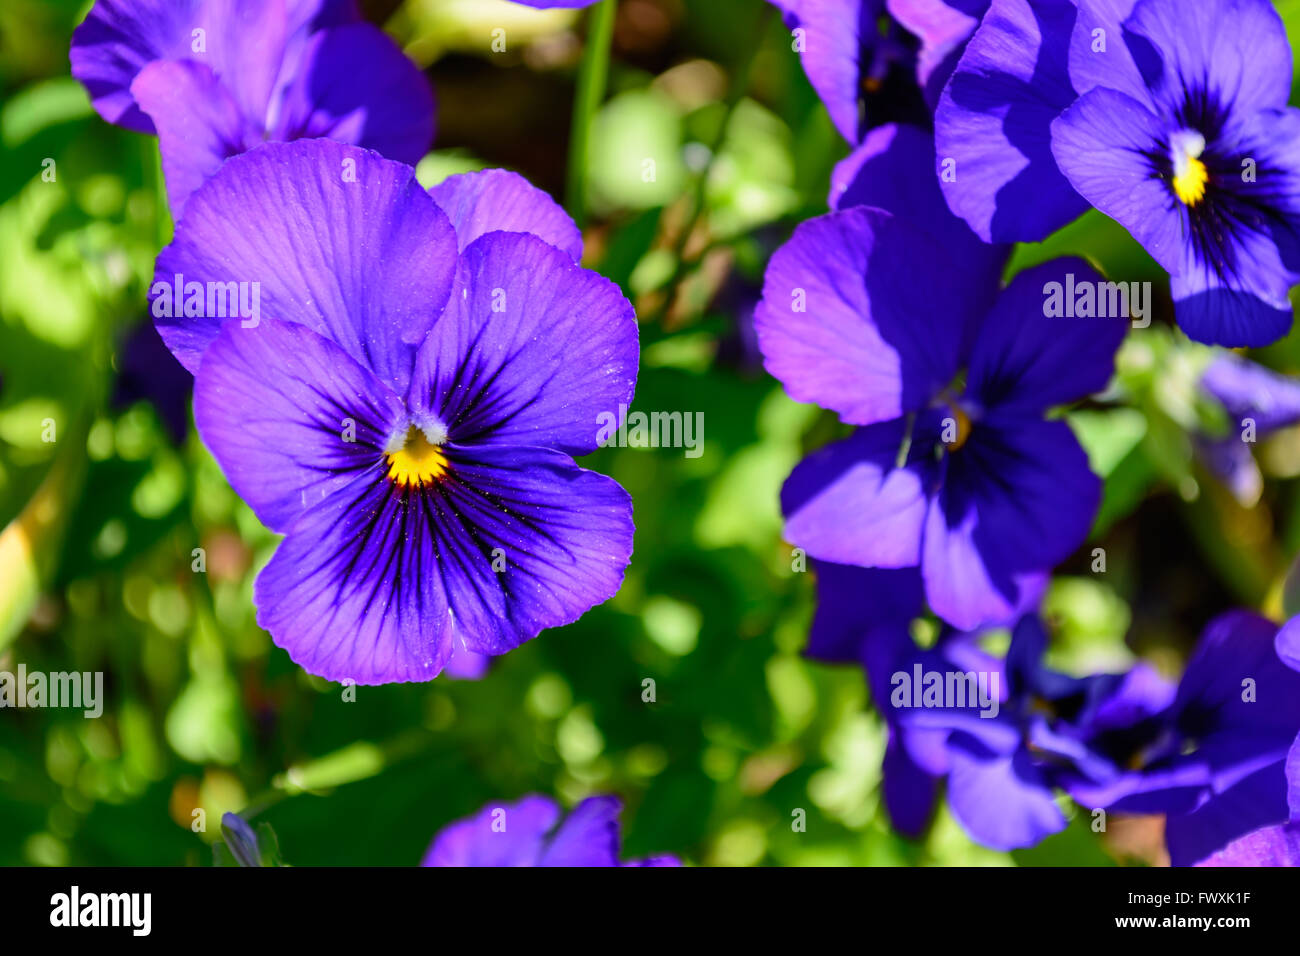 Purple Pansy with Bright Yellow Center Selective Focus Foreground with Pansies and green in background Stock Photo